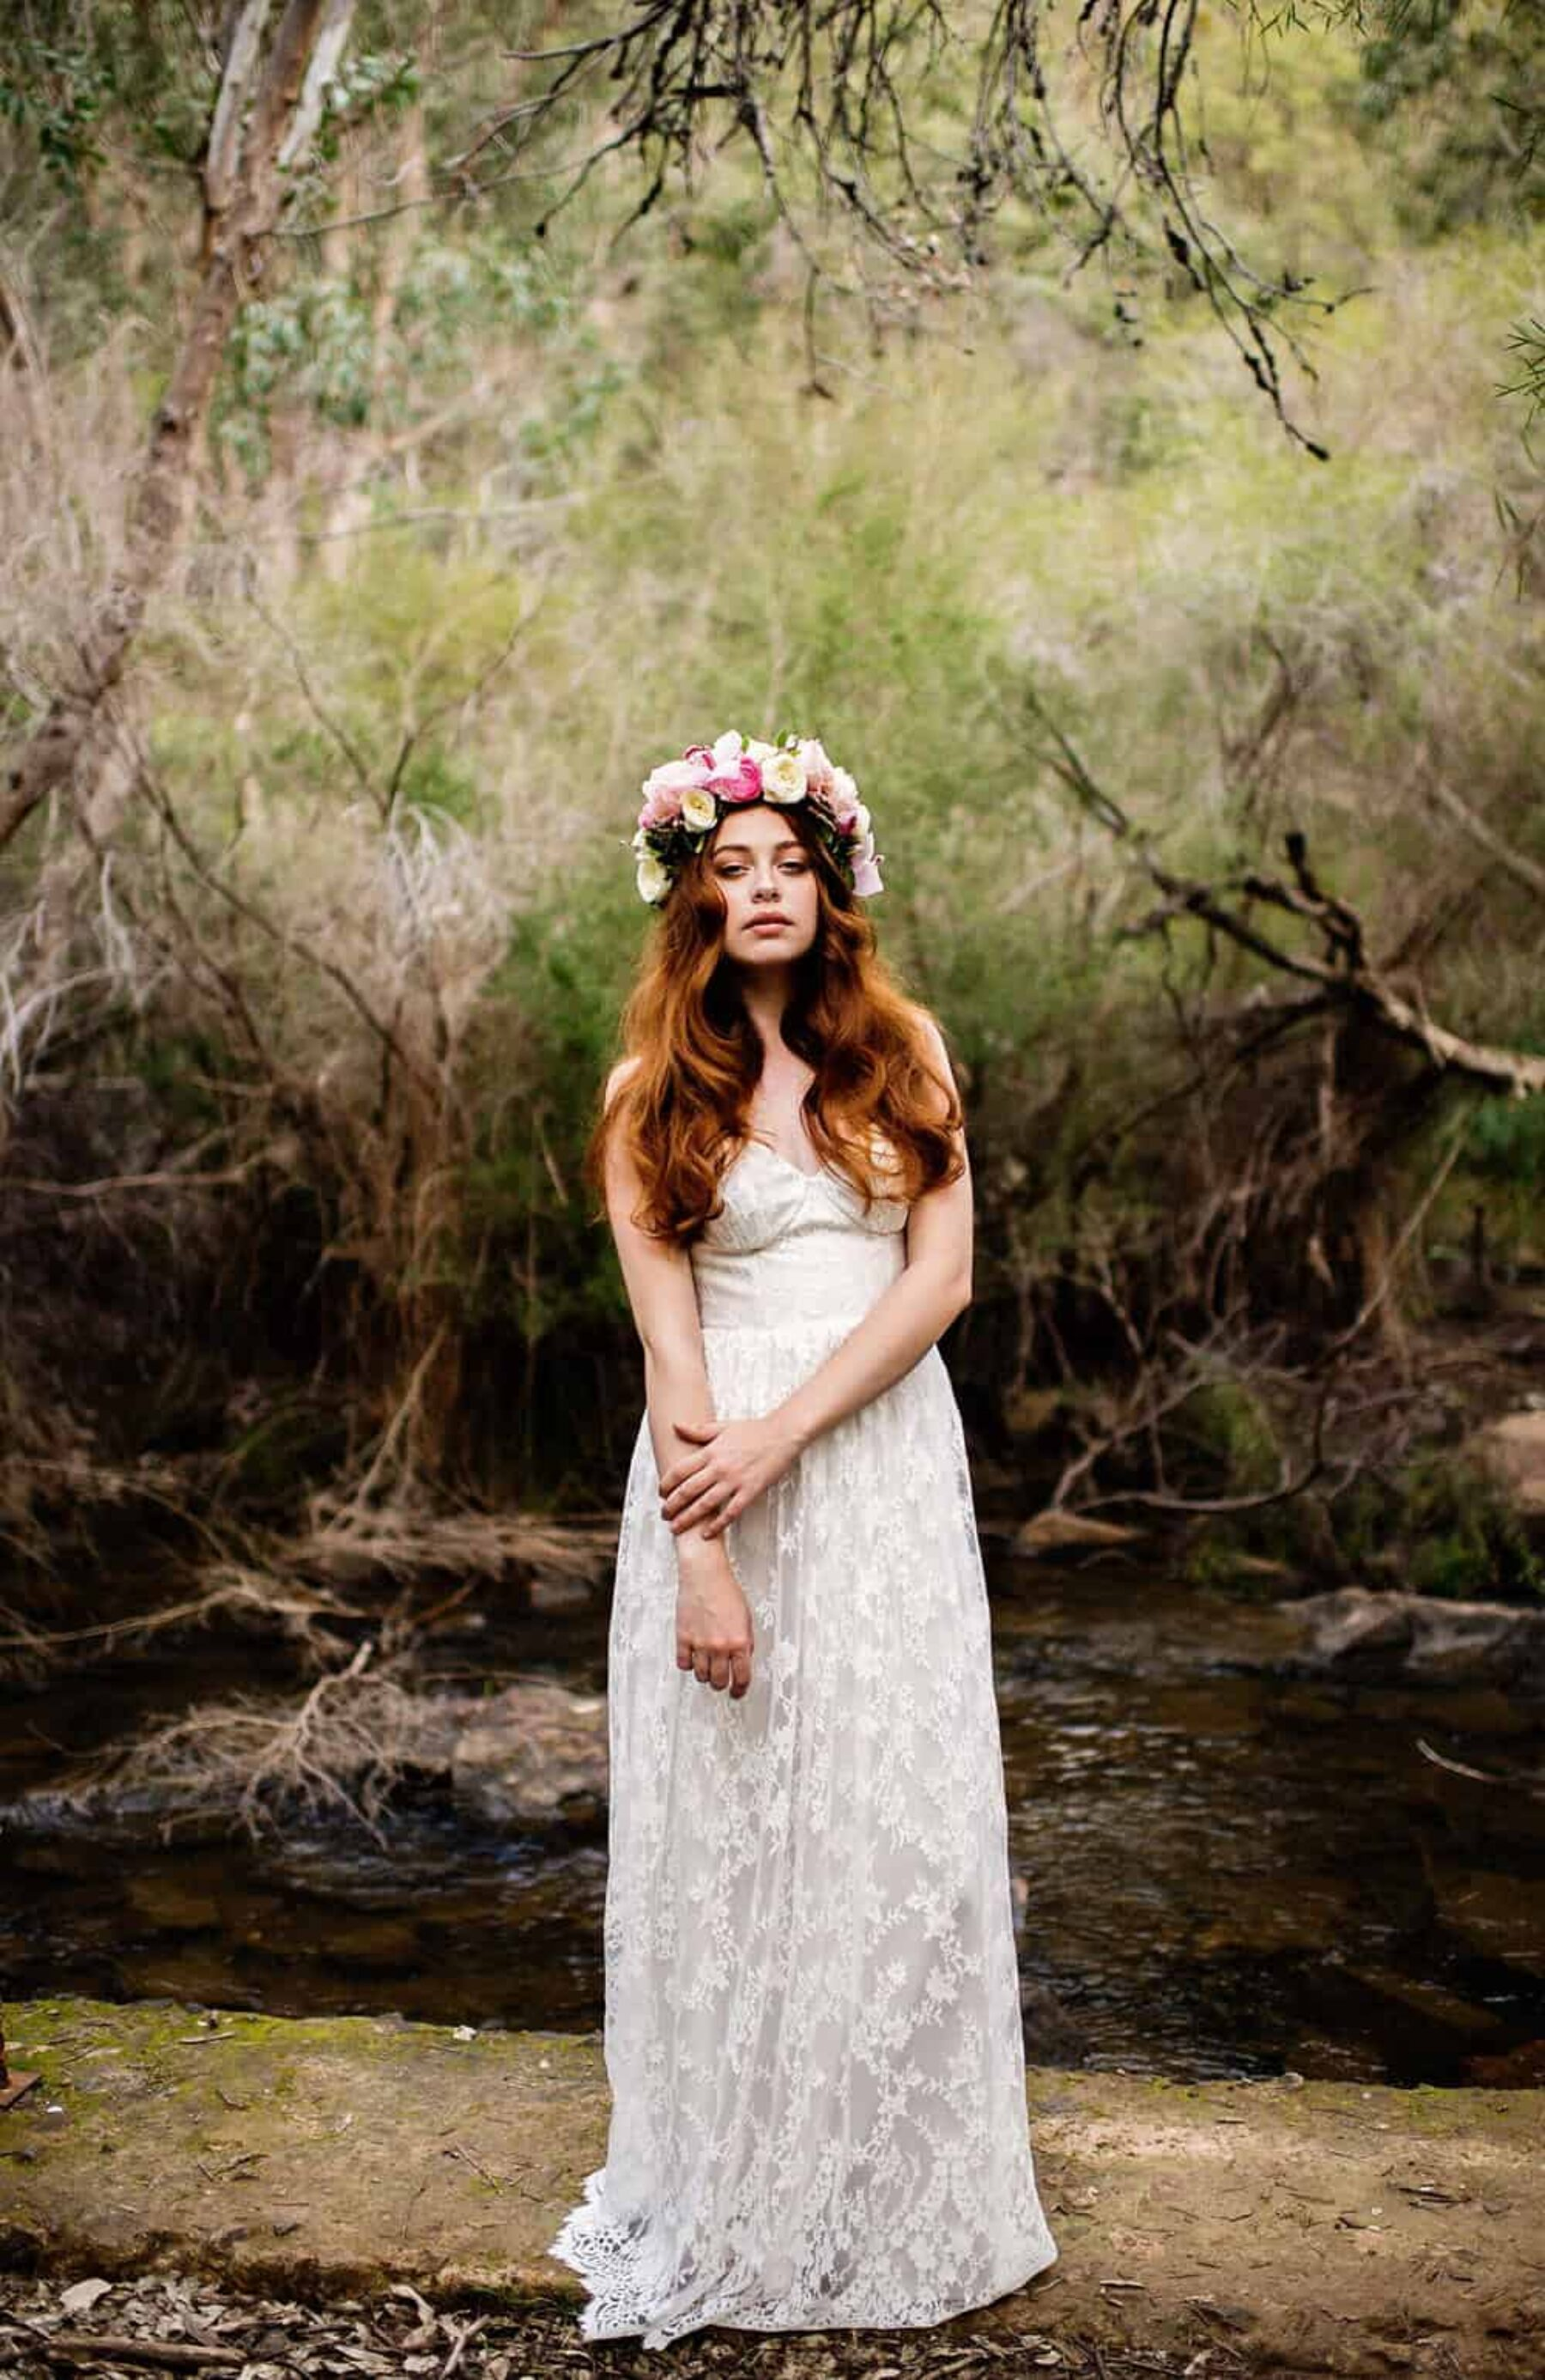 Breathtaking bridal editorial at Serpentine Falls, Western Australia | Fiona Vail Photography